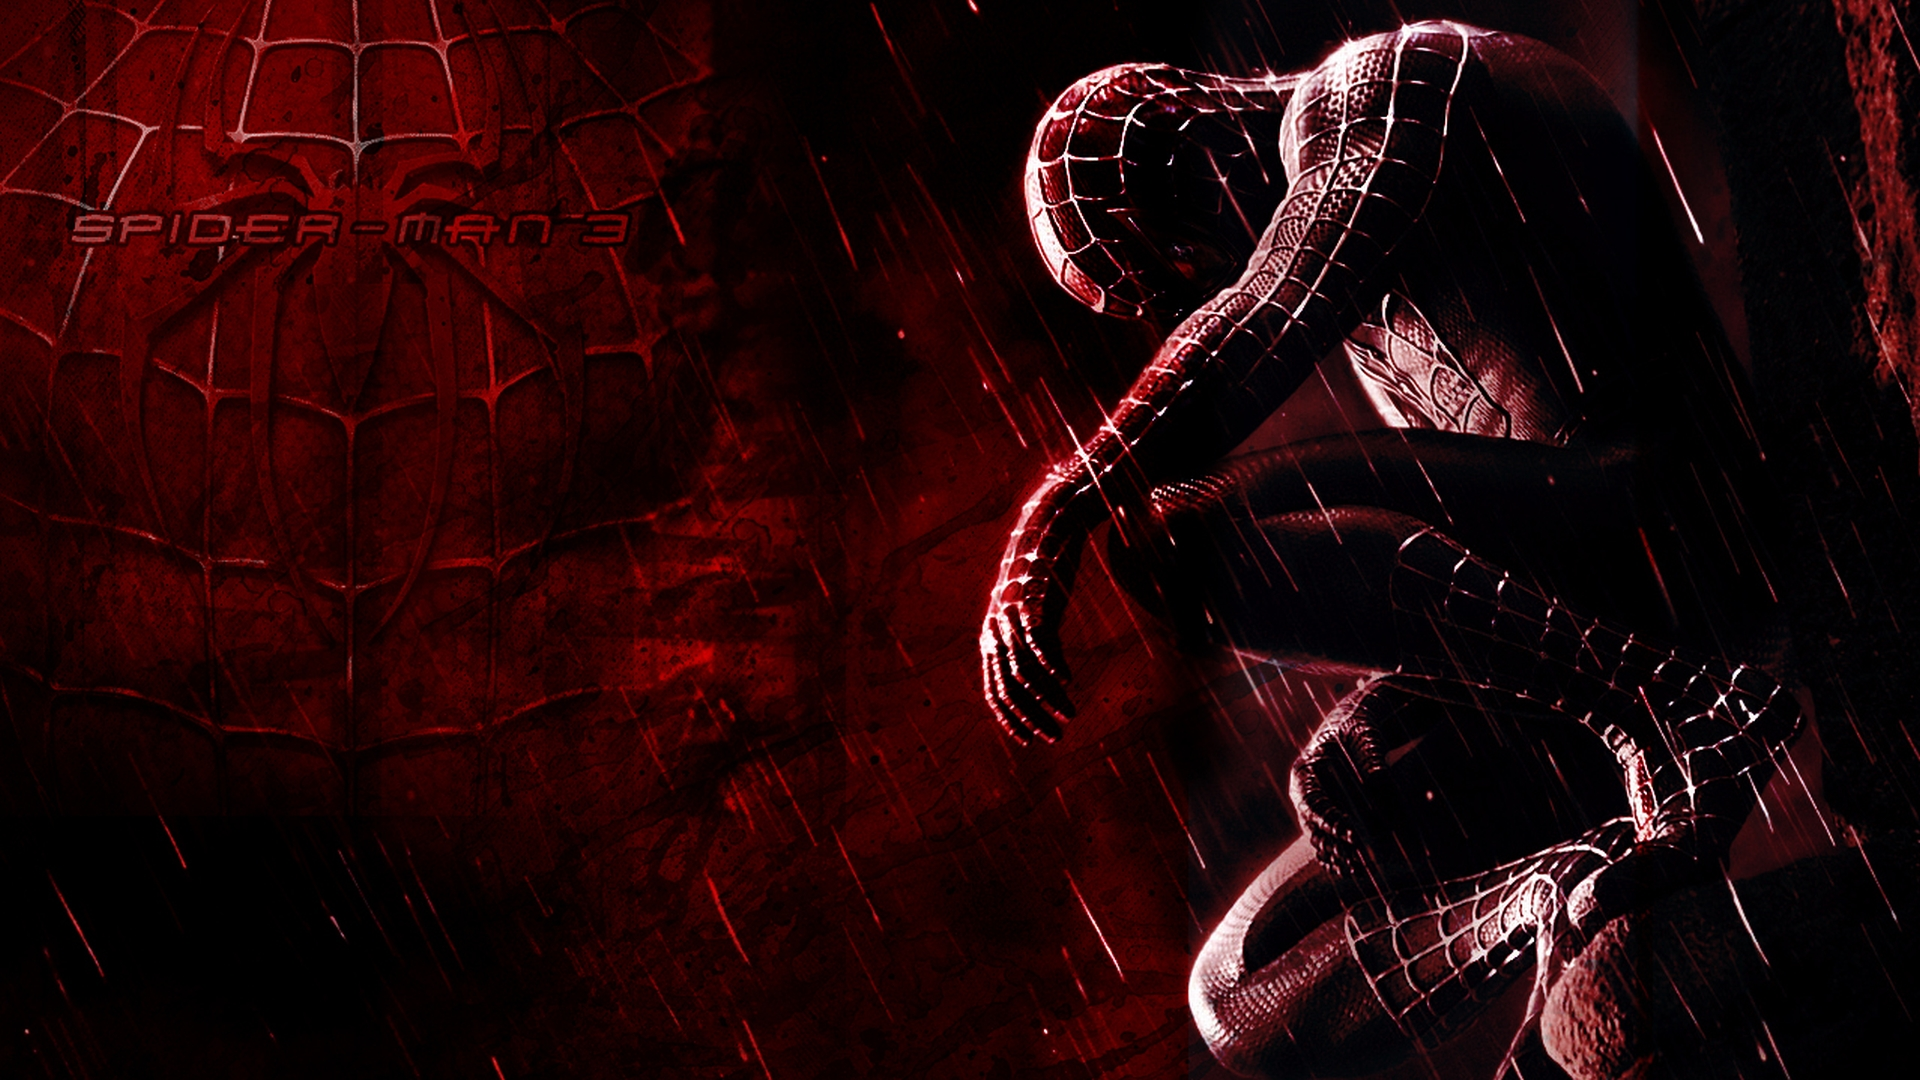 Download Wallpaper High Resolution Spiderman - 143516  Collection_421657.jpg